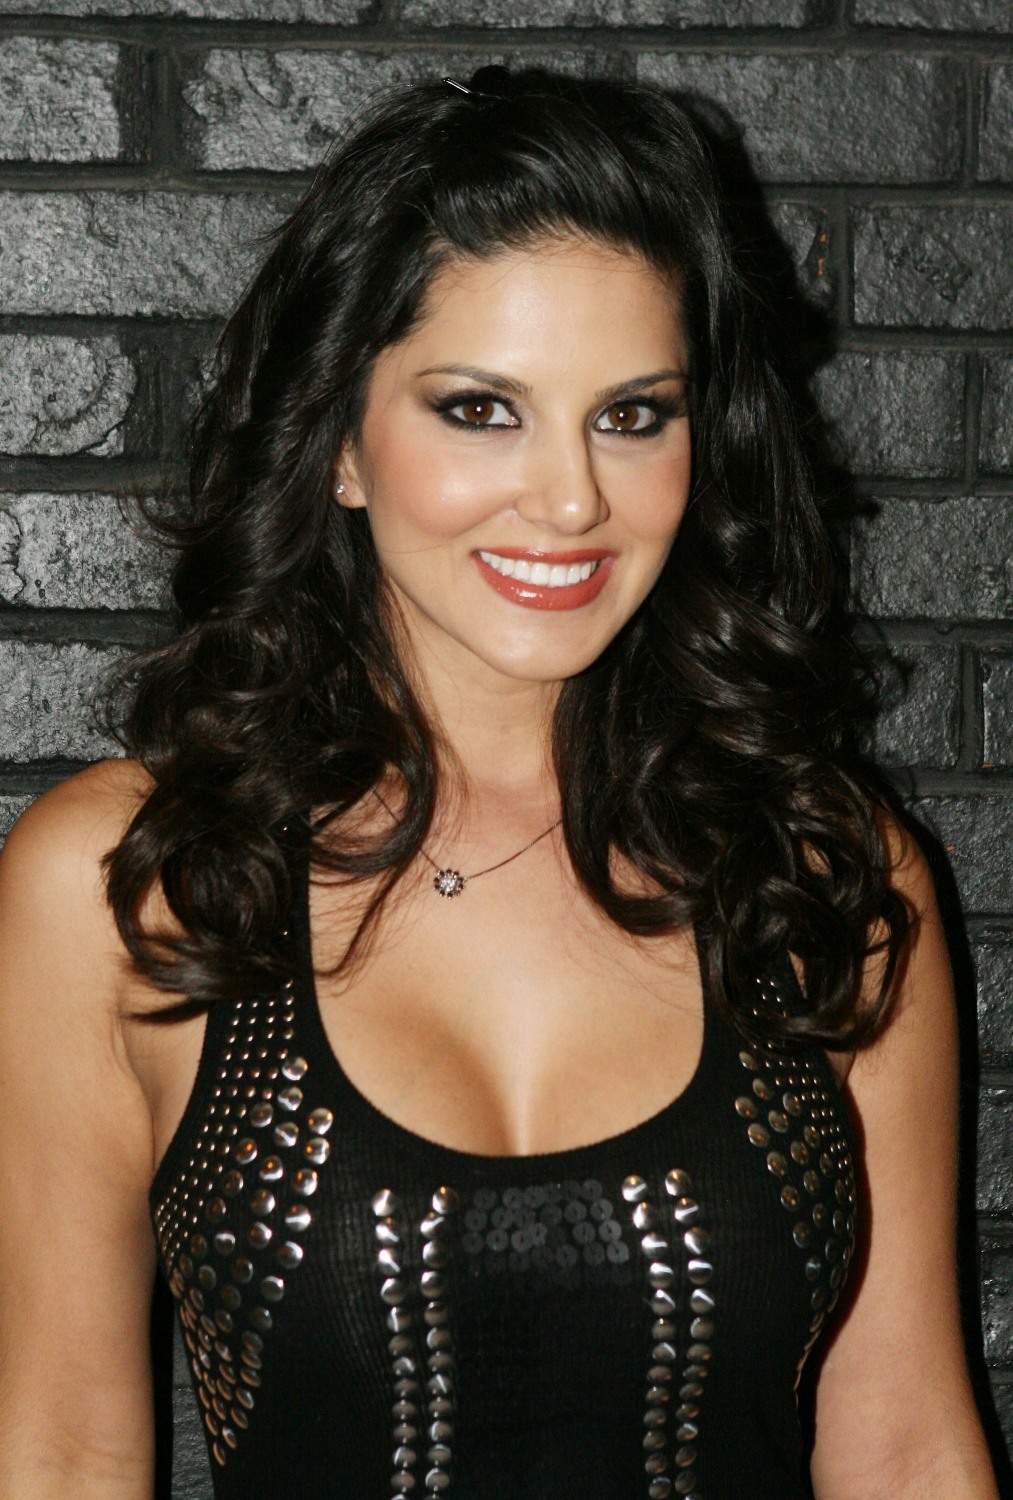 Sunny Leone At Avn Awards 2012 Exclusive Photos-7276